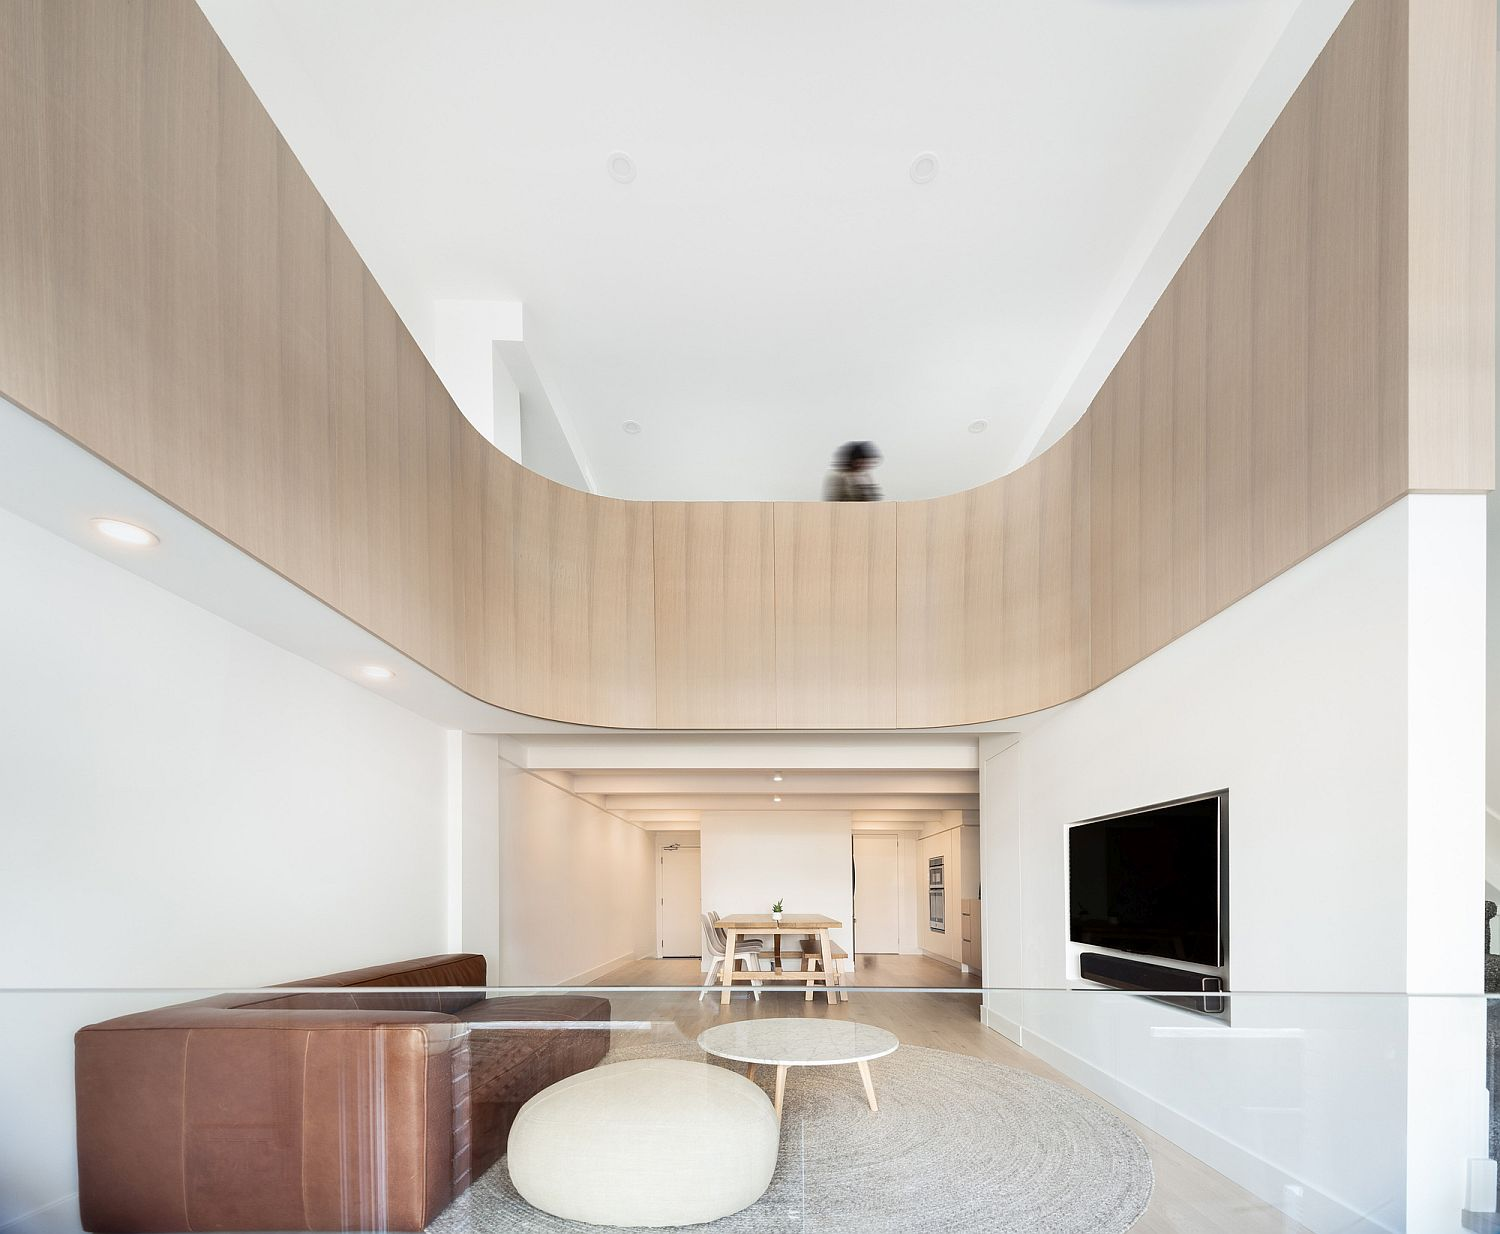 This Minimal Loft Inside a Converted Toronto Charm Has a Special Curved Surprise!